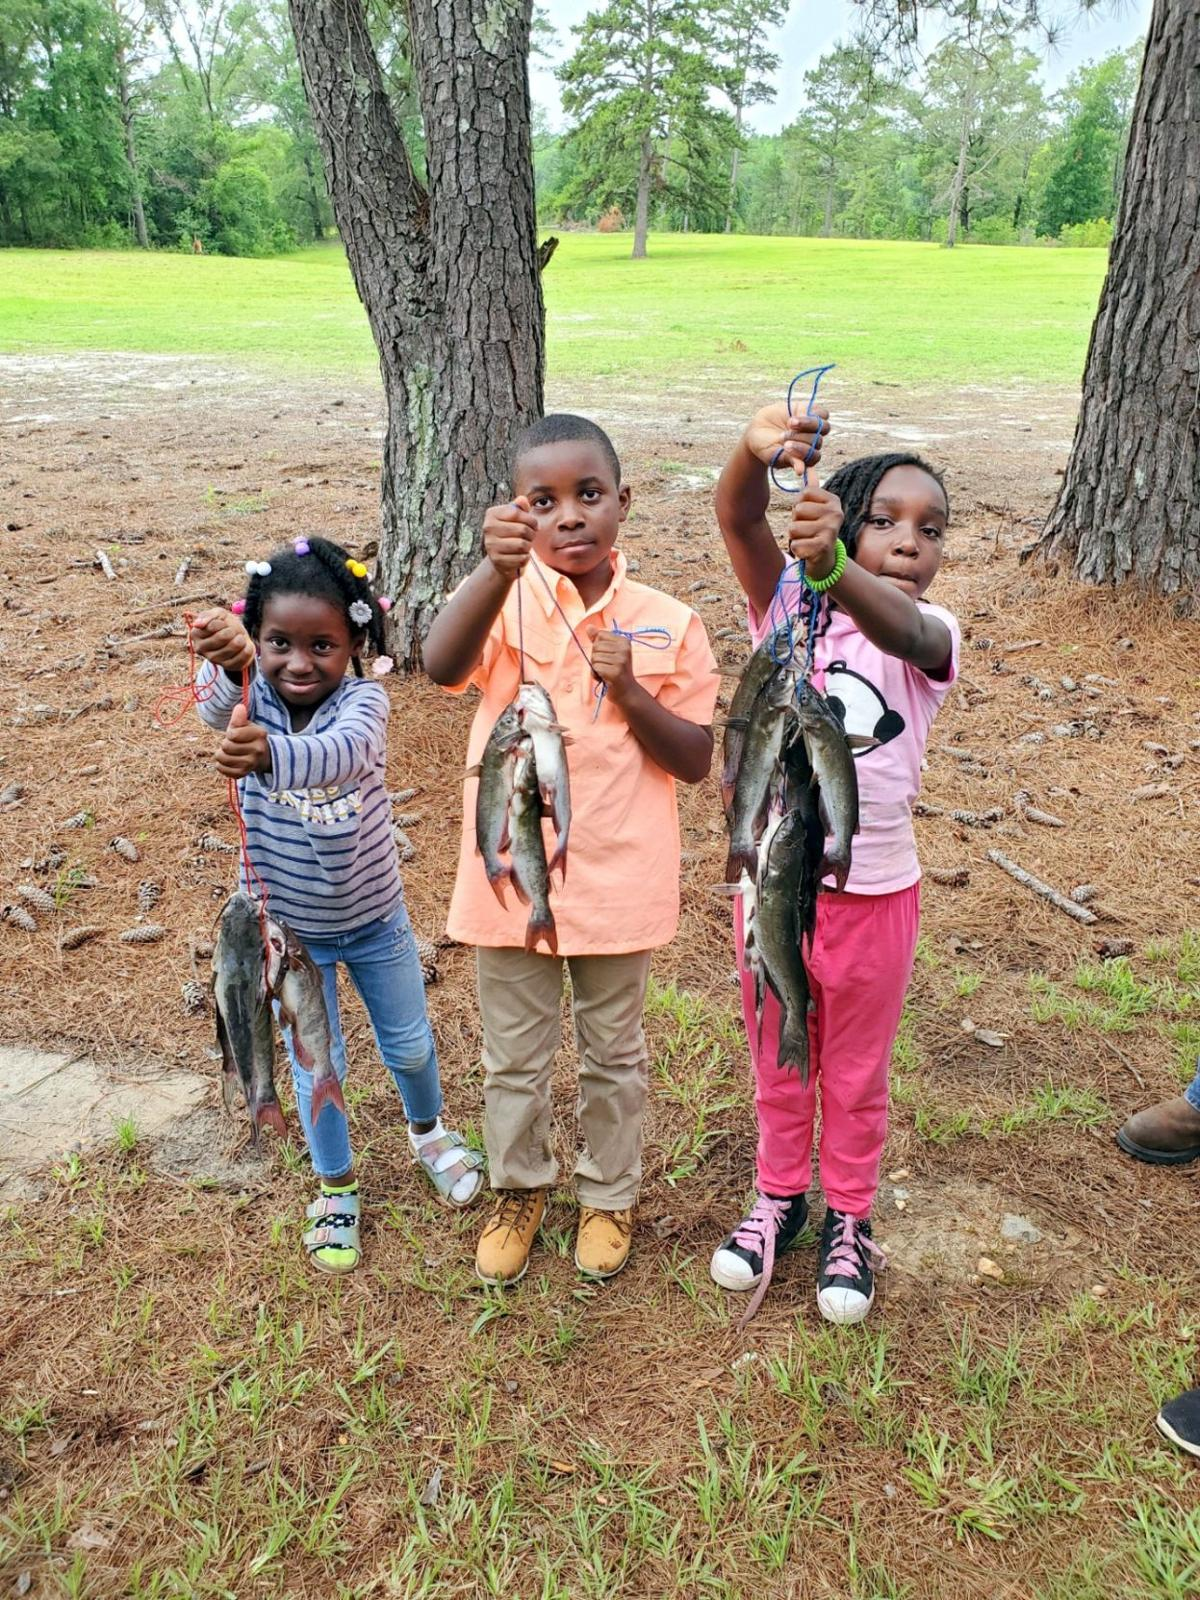 Youth anglers showing off their catch of the day.